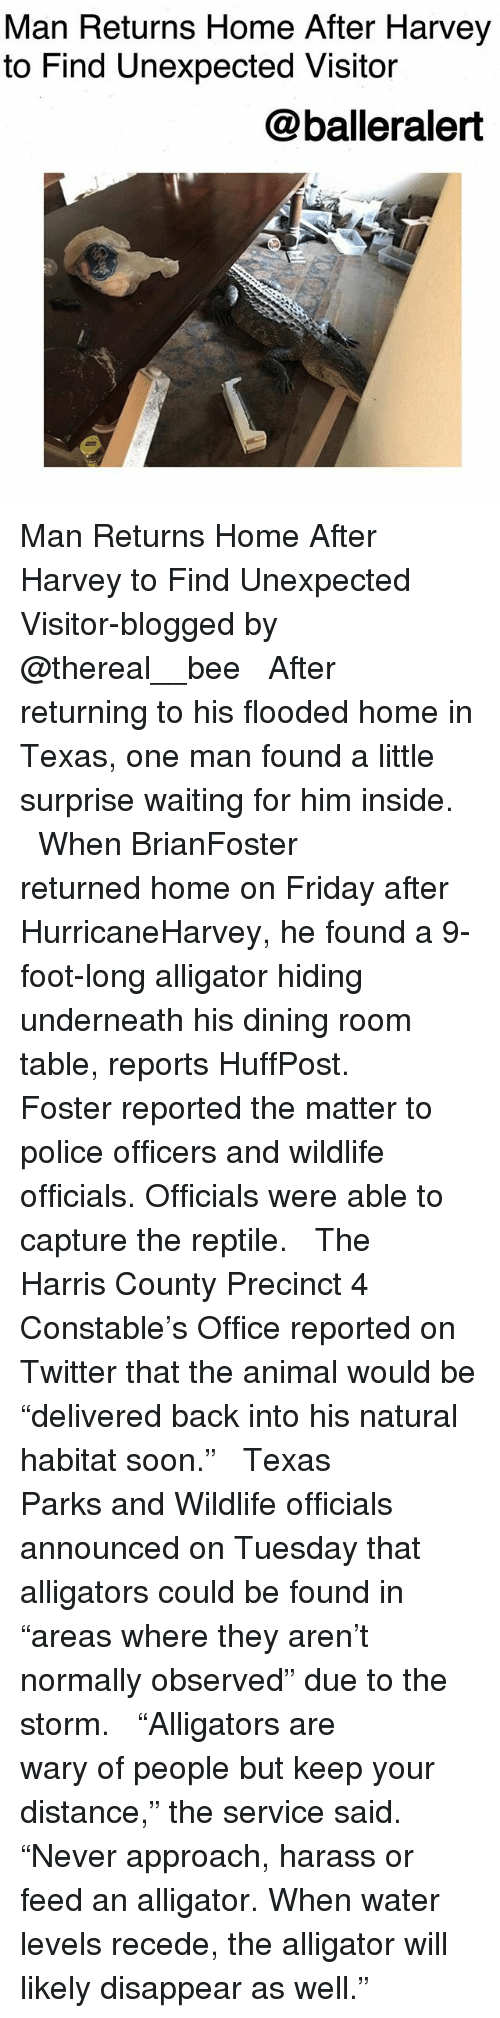 """Friday, Memes, and Police: Man Returns Home After Harvey  to Find Unexpected Visitor  @balleralert Man Returns Home After Harvey to Find Unexpected Visitor-blogged by @thereal__bee ⠀⠀⠀⠀⠀⠀⠀⠀⠀ ⠀⠀ After returning to his flooded home in Texas, one man found a little surprise waiting for him inside. ⠀⠀⠀⠀⠀⠀⠀⠀⠀ ⠀⠀ When BrianFoster returned home on Friday after HurricaneHarvey, he found a 9-foot-long alligator hiding underneath his dining room table, reports HuffPost. ⠀⠀⠀⠀⠀⠀⠀⠀⠀ ⠀⠀ Foster reported the matter to police officers and wildlife officials. Officials were able to capture the reptile. ⠀⠀⠀⠀⠀⠀⠀⠀⠀ ⠀⠀ The Harris County Precinct 4 Constable's Office reported on Twitter that the animal would be """"delivered back into his natural habitat soon."""" ⠀⠀⠀⠀⠀⠀⠀⠀⠀ ⠀⠀ Texas Parks and Wildlife officials announced on Tuesday that alligators could be found in """"areas where they aren't normally observed"""" due to the storm. ⠀⠀⠀⠀⠀⠀⠀⠀⠀ ⠀⠀ """"Alligators are wary of people but keep your distance,"""" the service said. """"Never approach, harass or feed an alligator. When water levels recede, the alligator will likely disappear as well."""""""